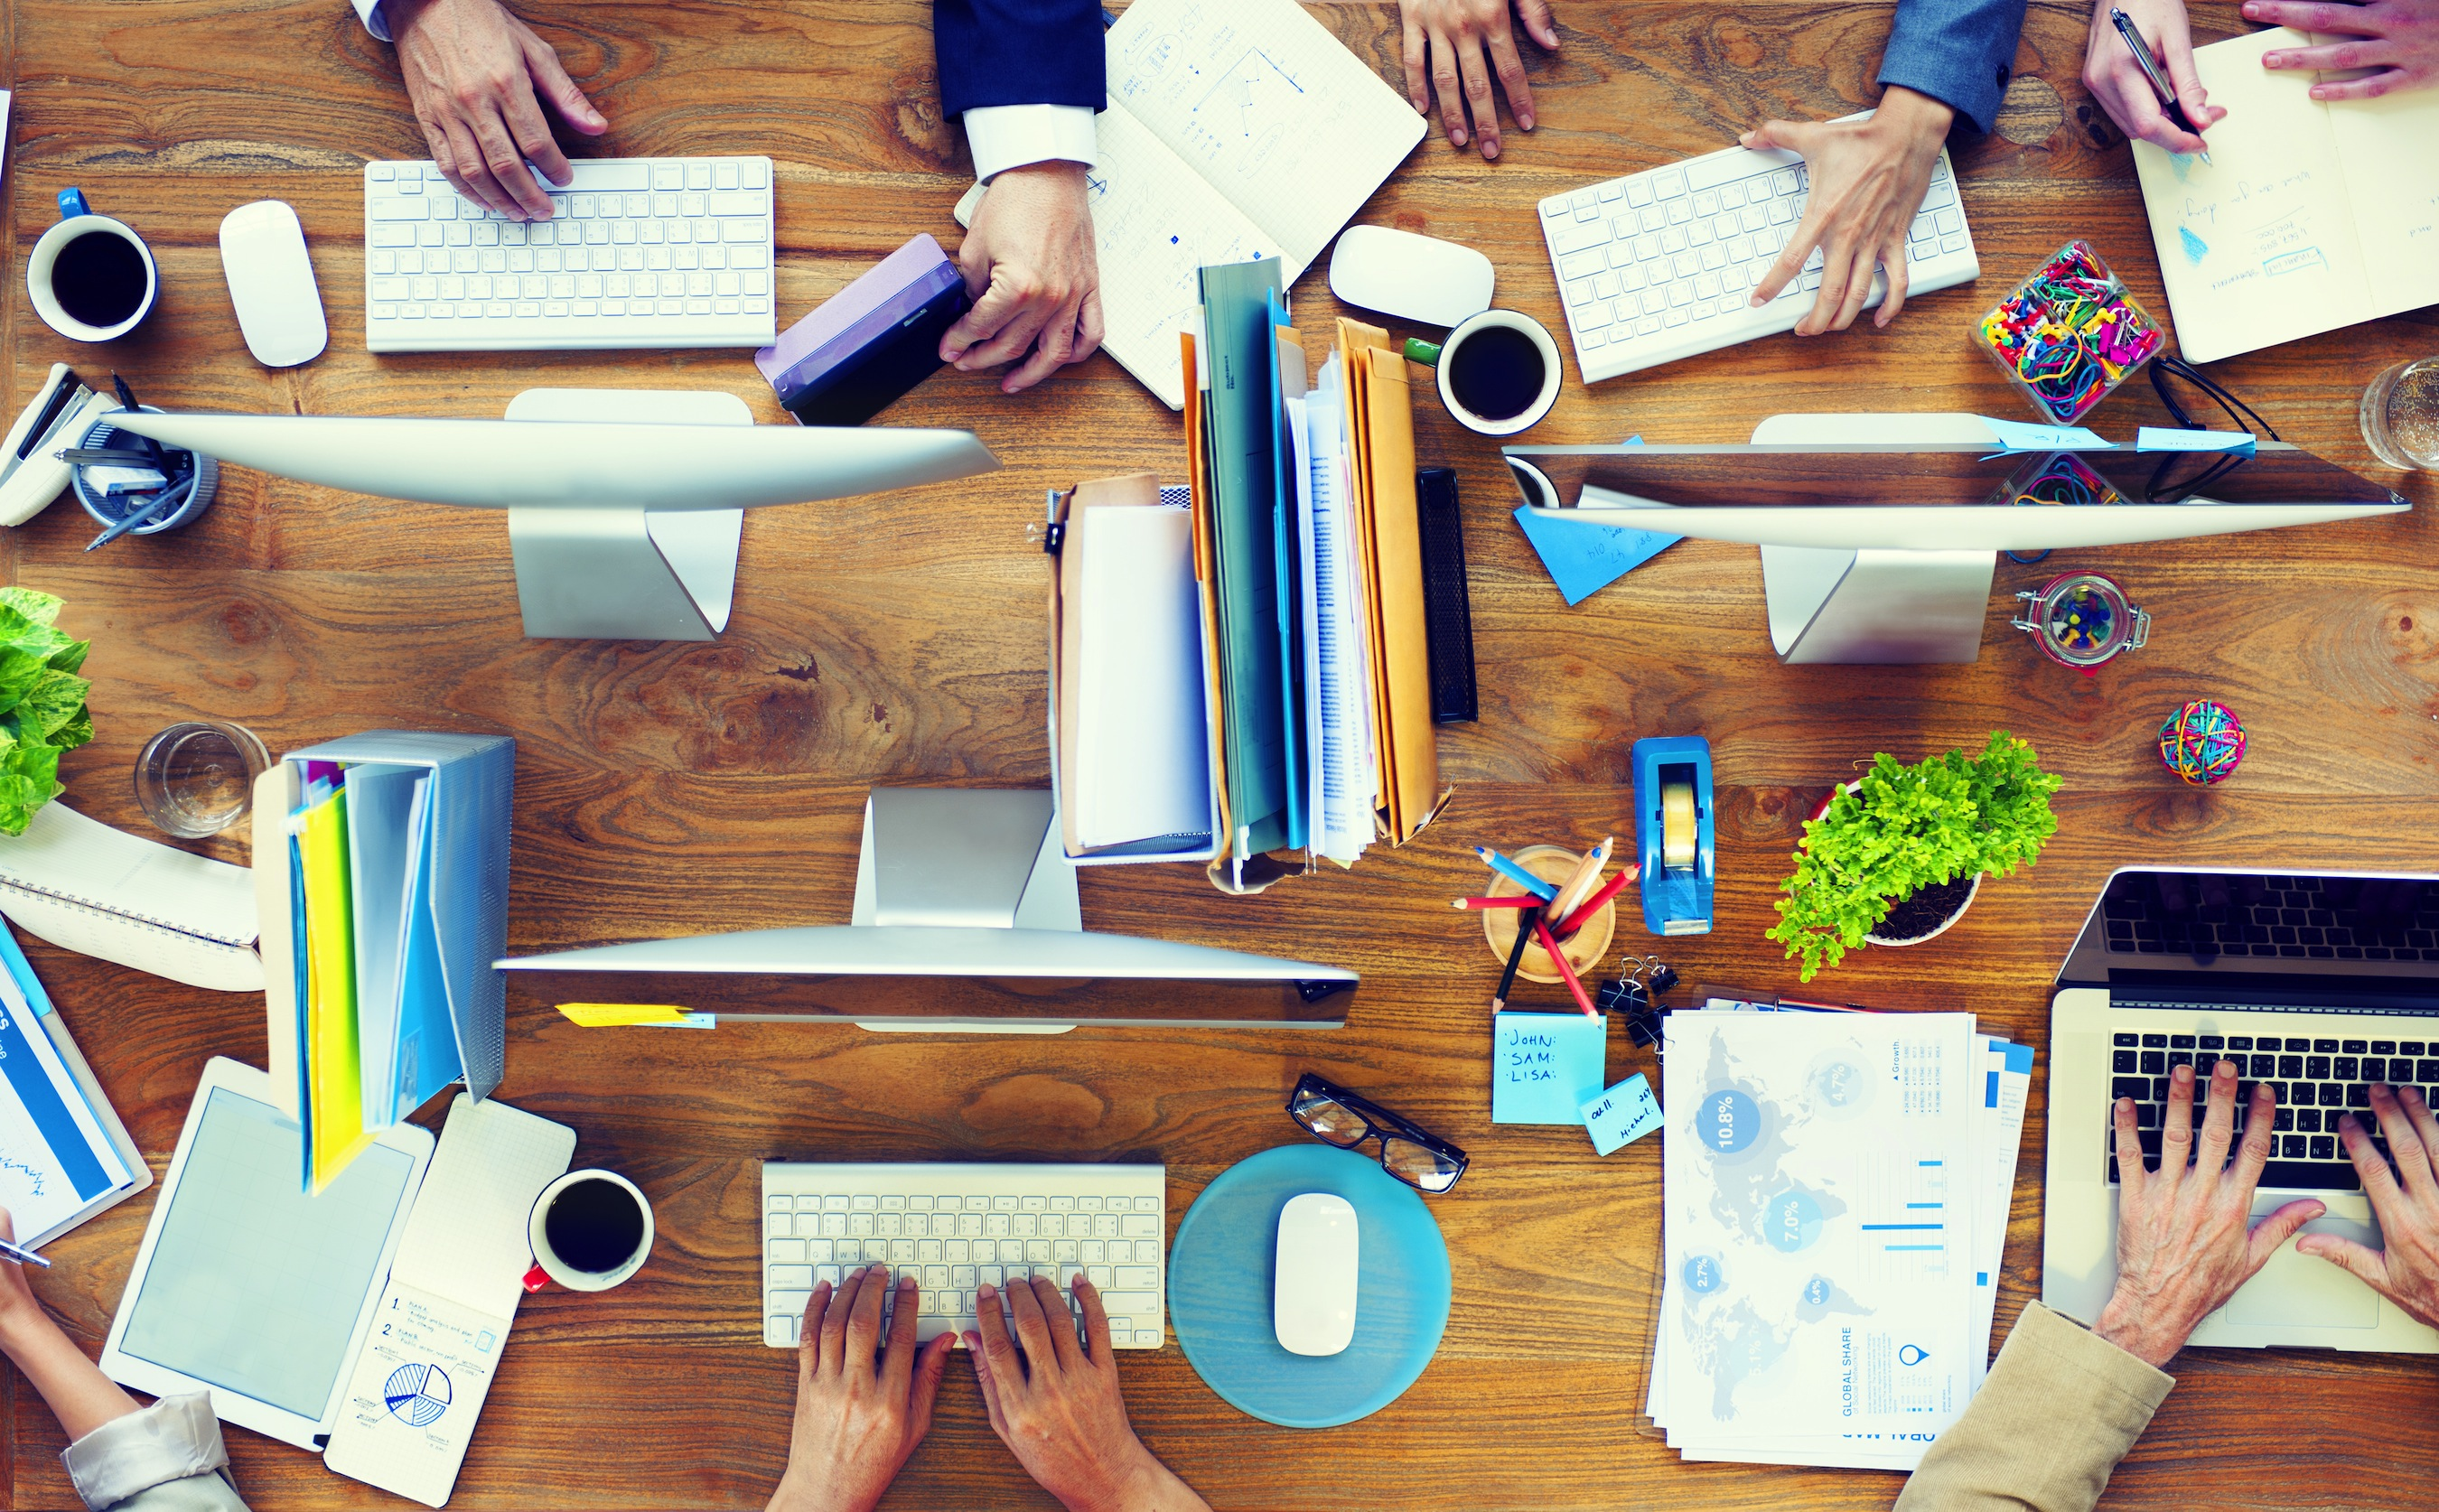 Group of Business People Working on an OfficeDesk